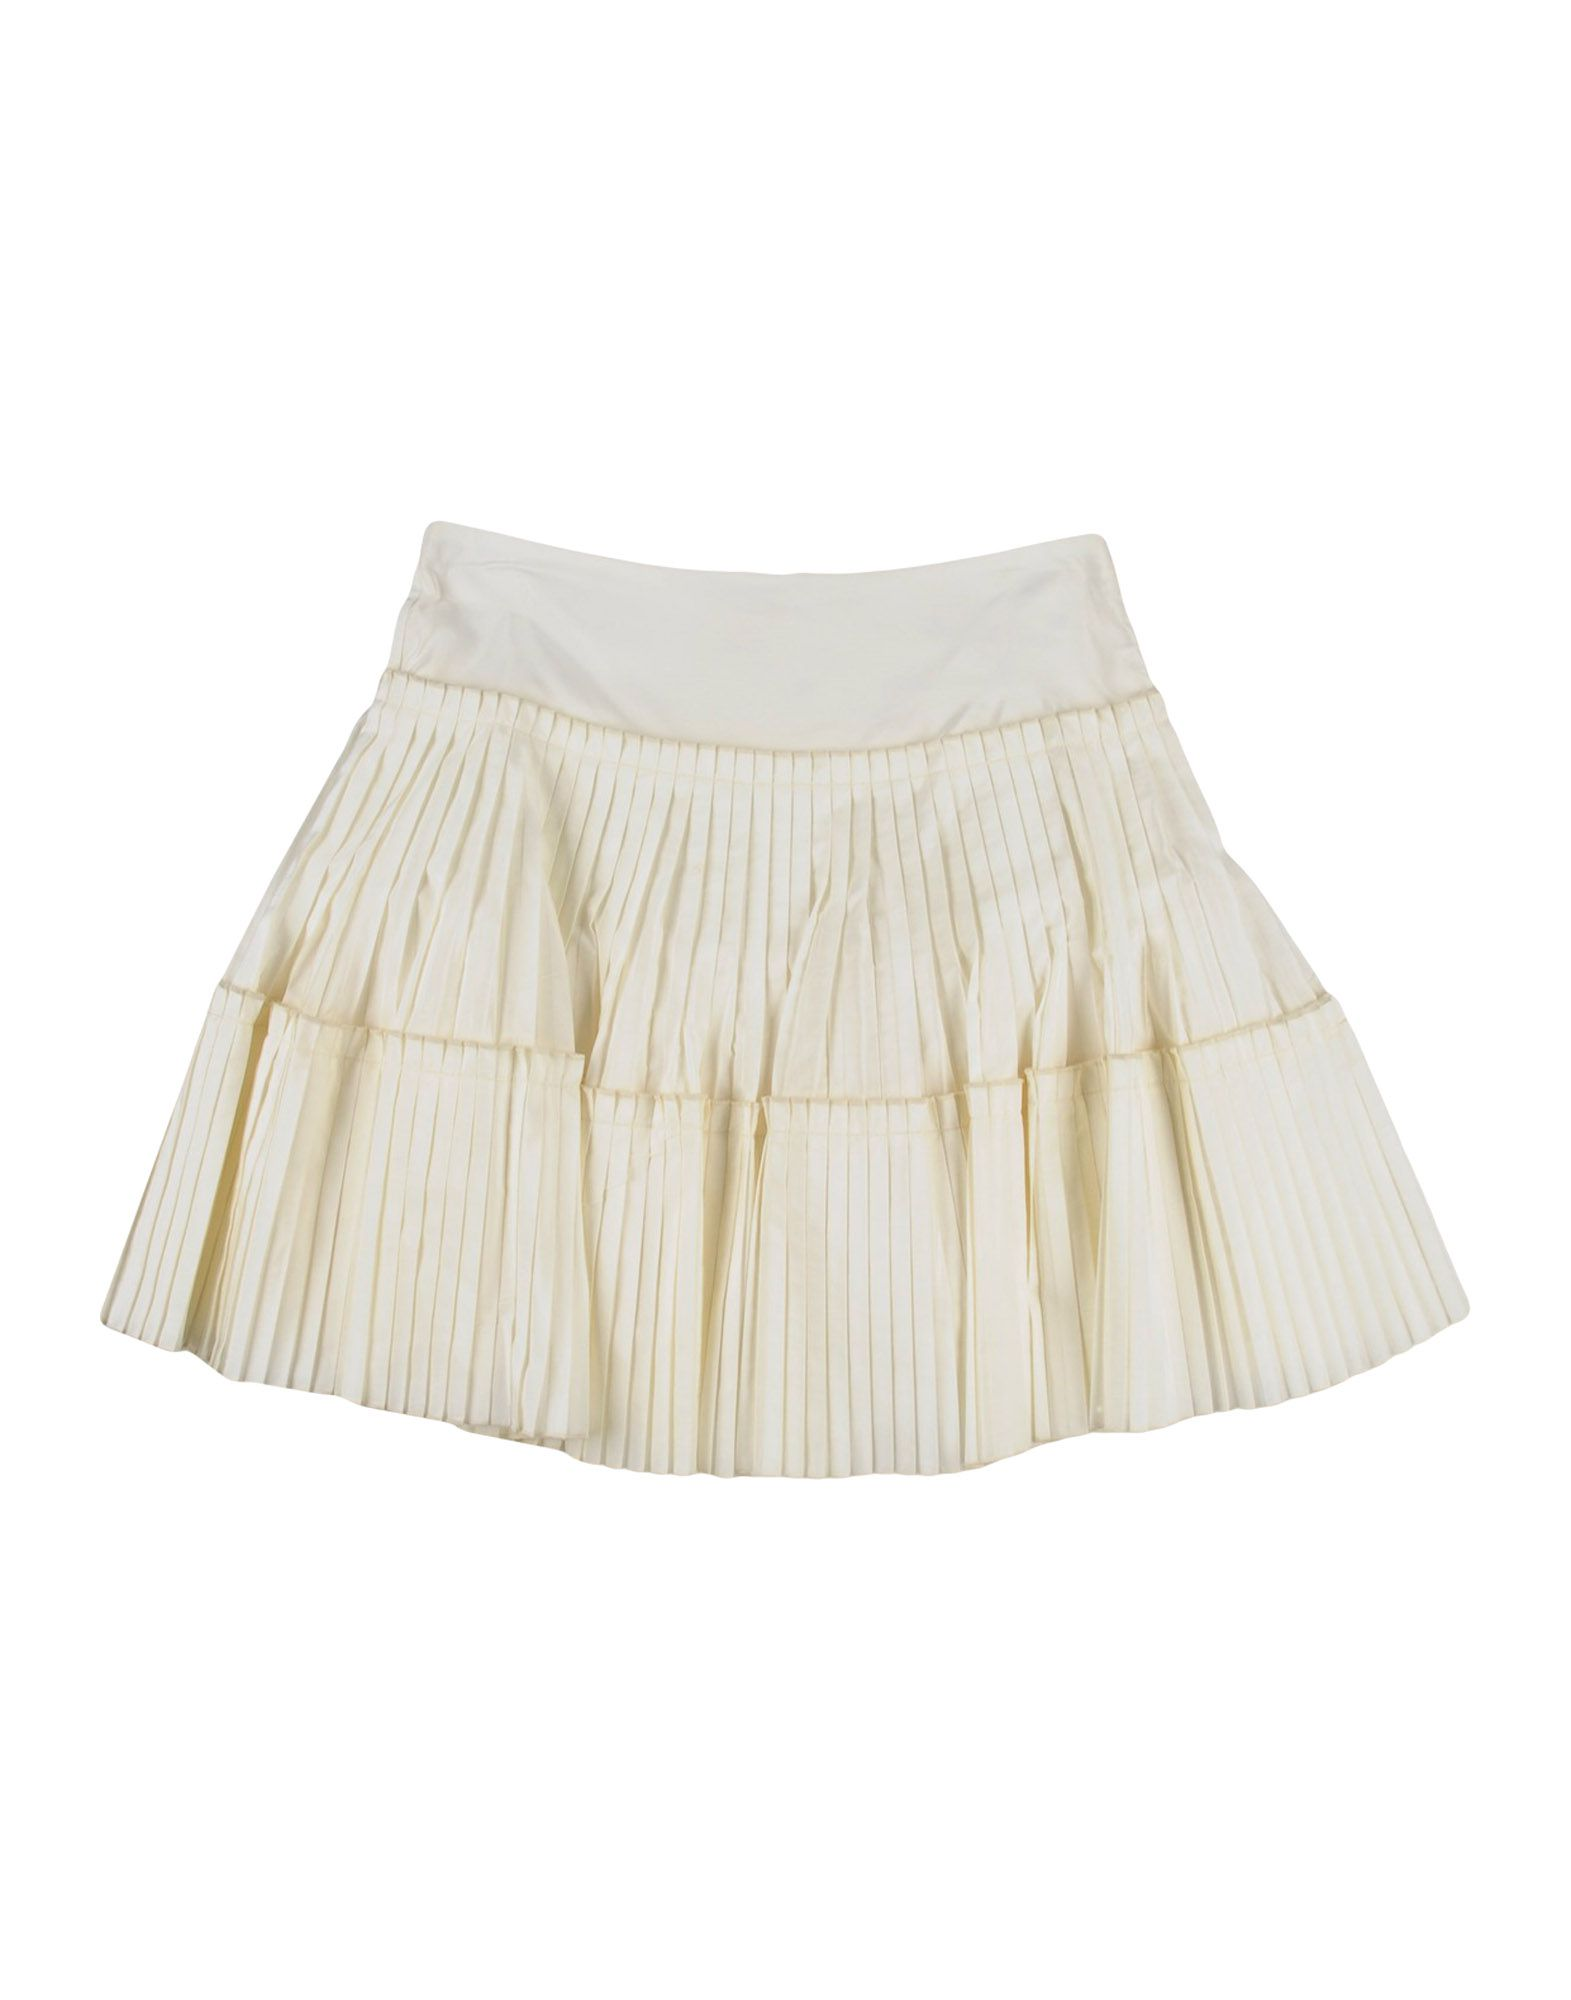 MONNALISA CHIC Skirt in Ivory